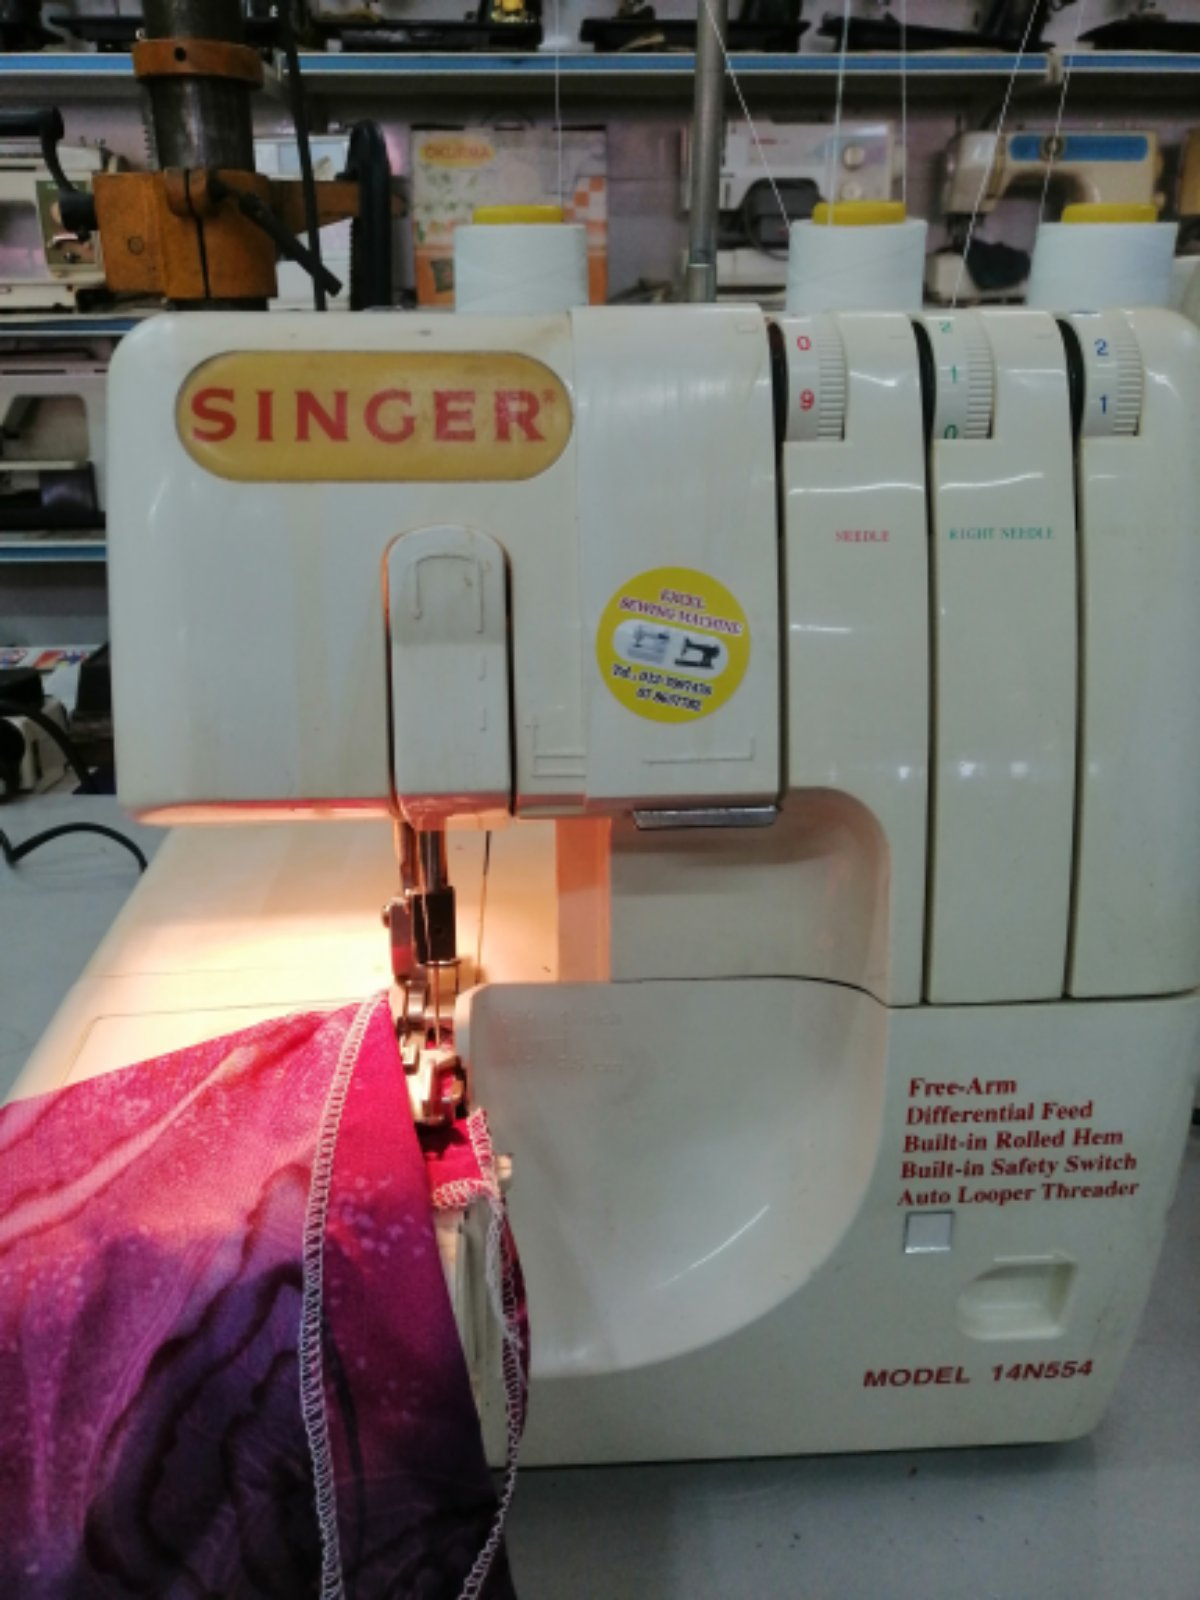 Fix And Sevis Singer Portable Overlock Sewing machine